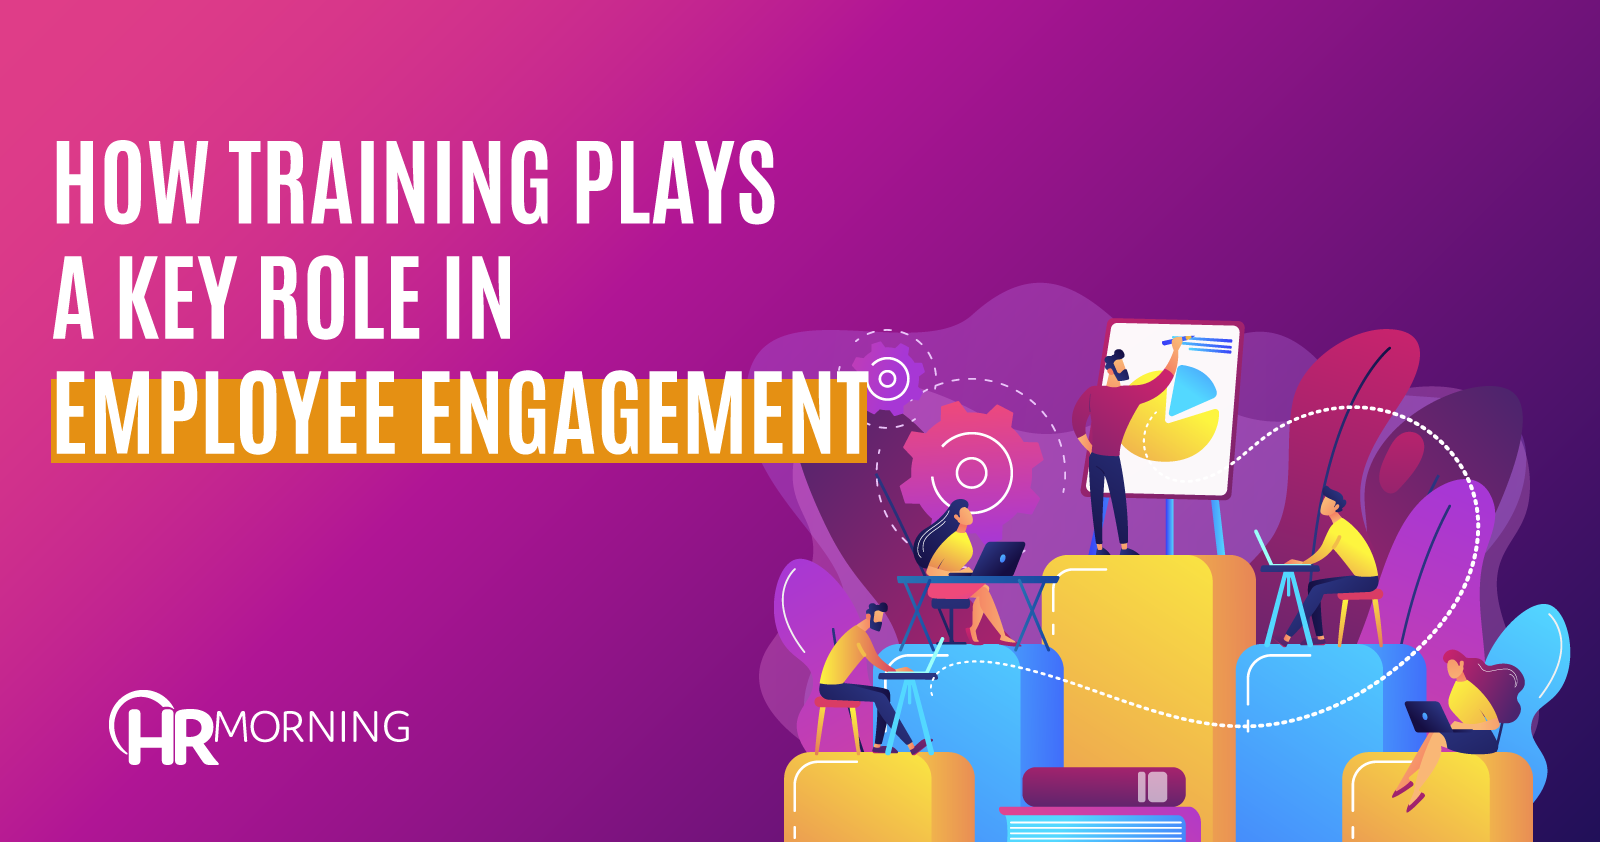 How Training Plays A Key Role In Employee Engagement